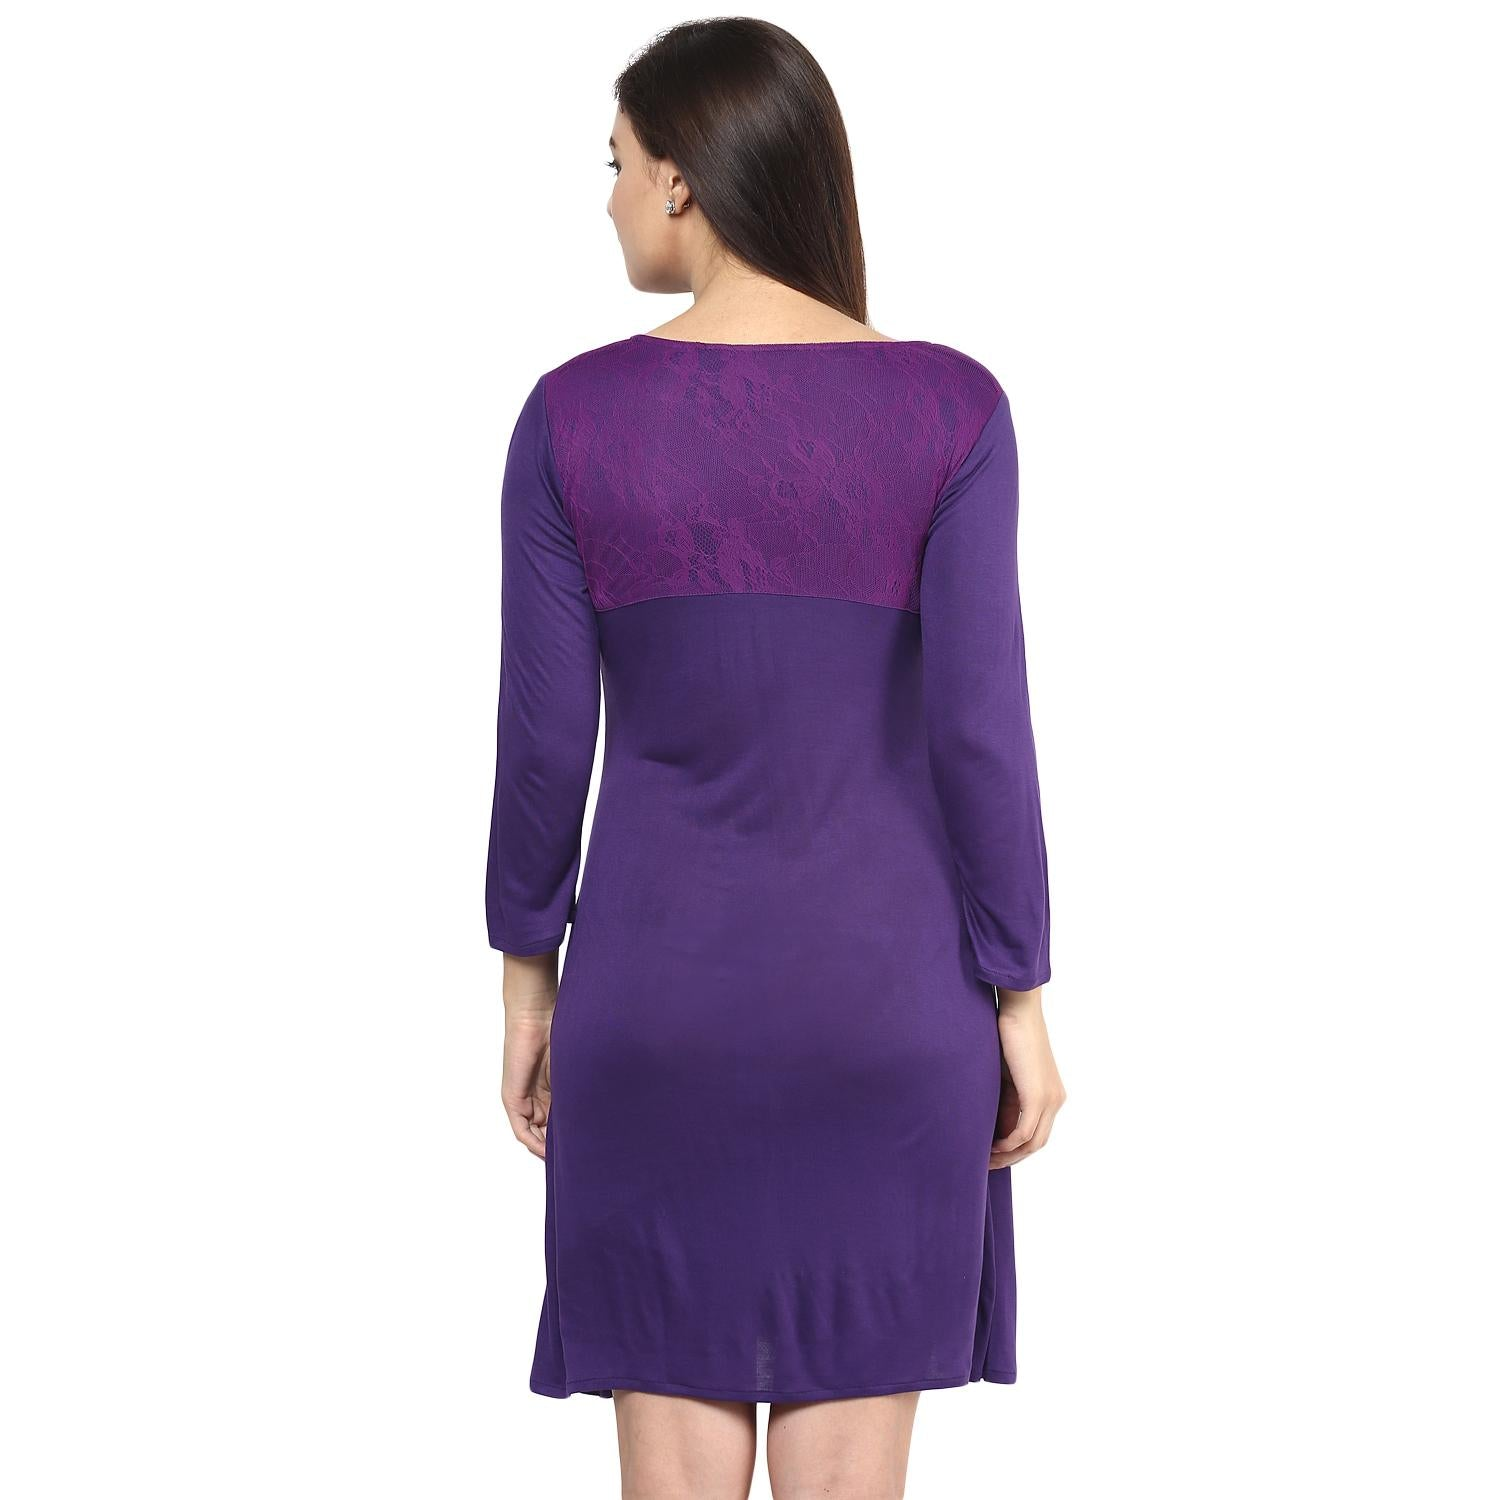 Dark Purple A-line Maternity Dress w/ a Bow Knot and Lace Back- Mine4Nine